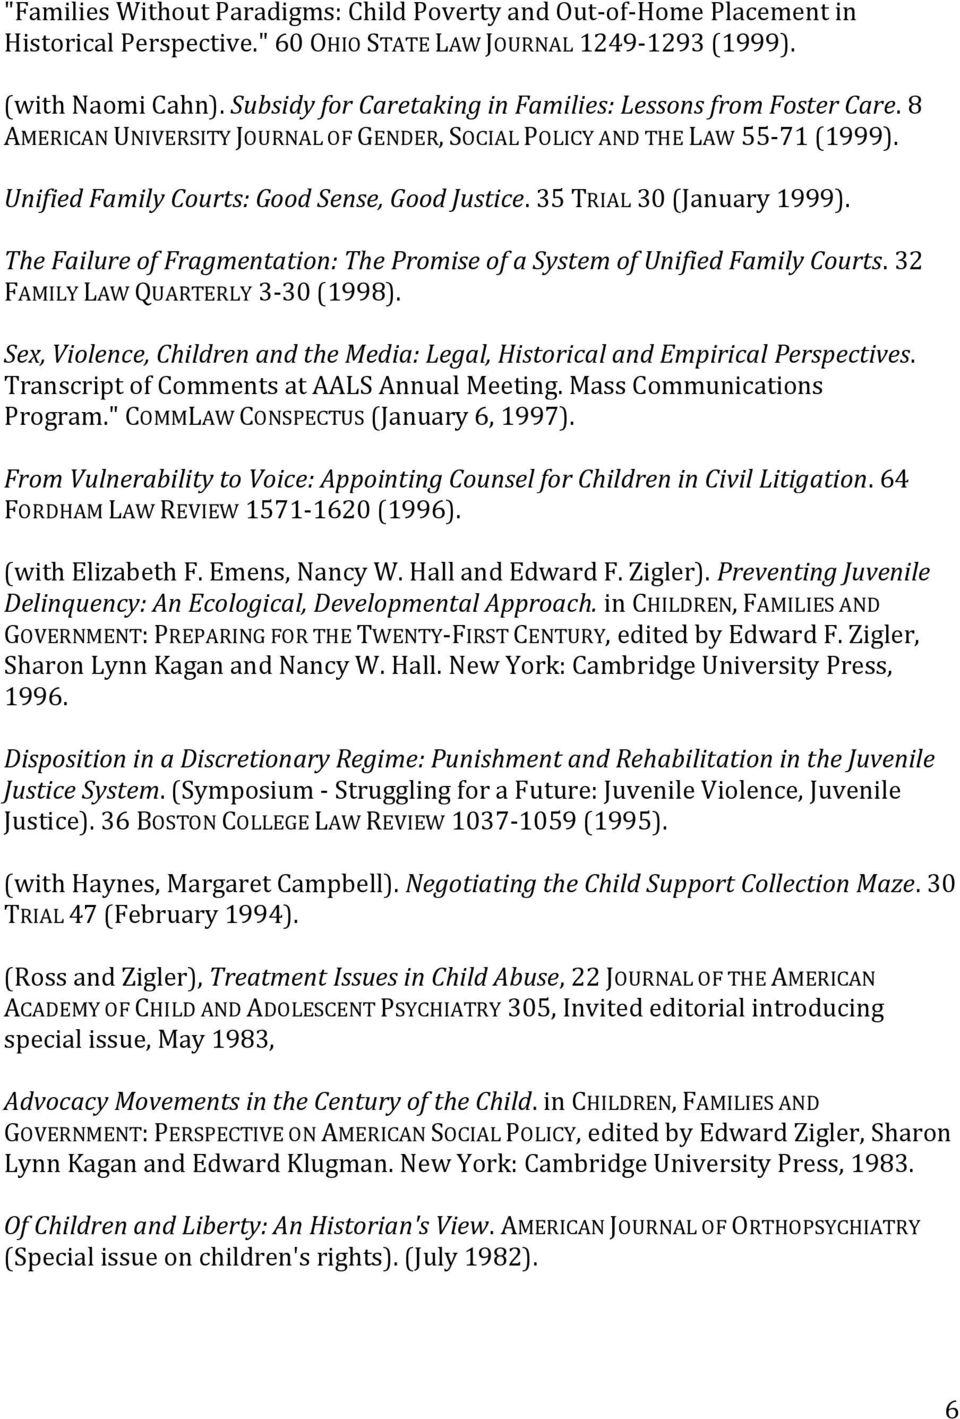 35 TRIAL 30 (January 1999). The Failure of Fragmentation: The Promise of a System of Unified Family Courts. 32 FAMILY LAW QUARTERLY 3-30 (1998).